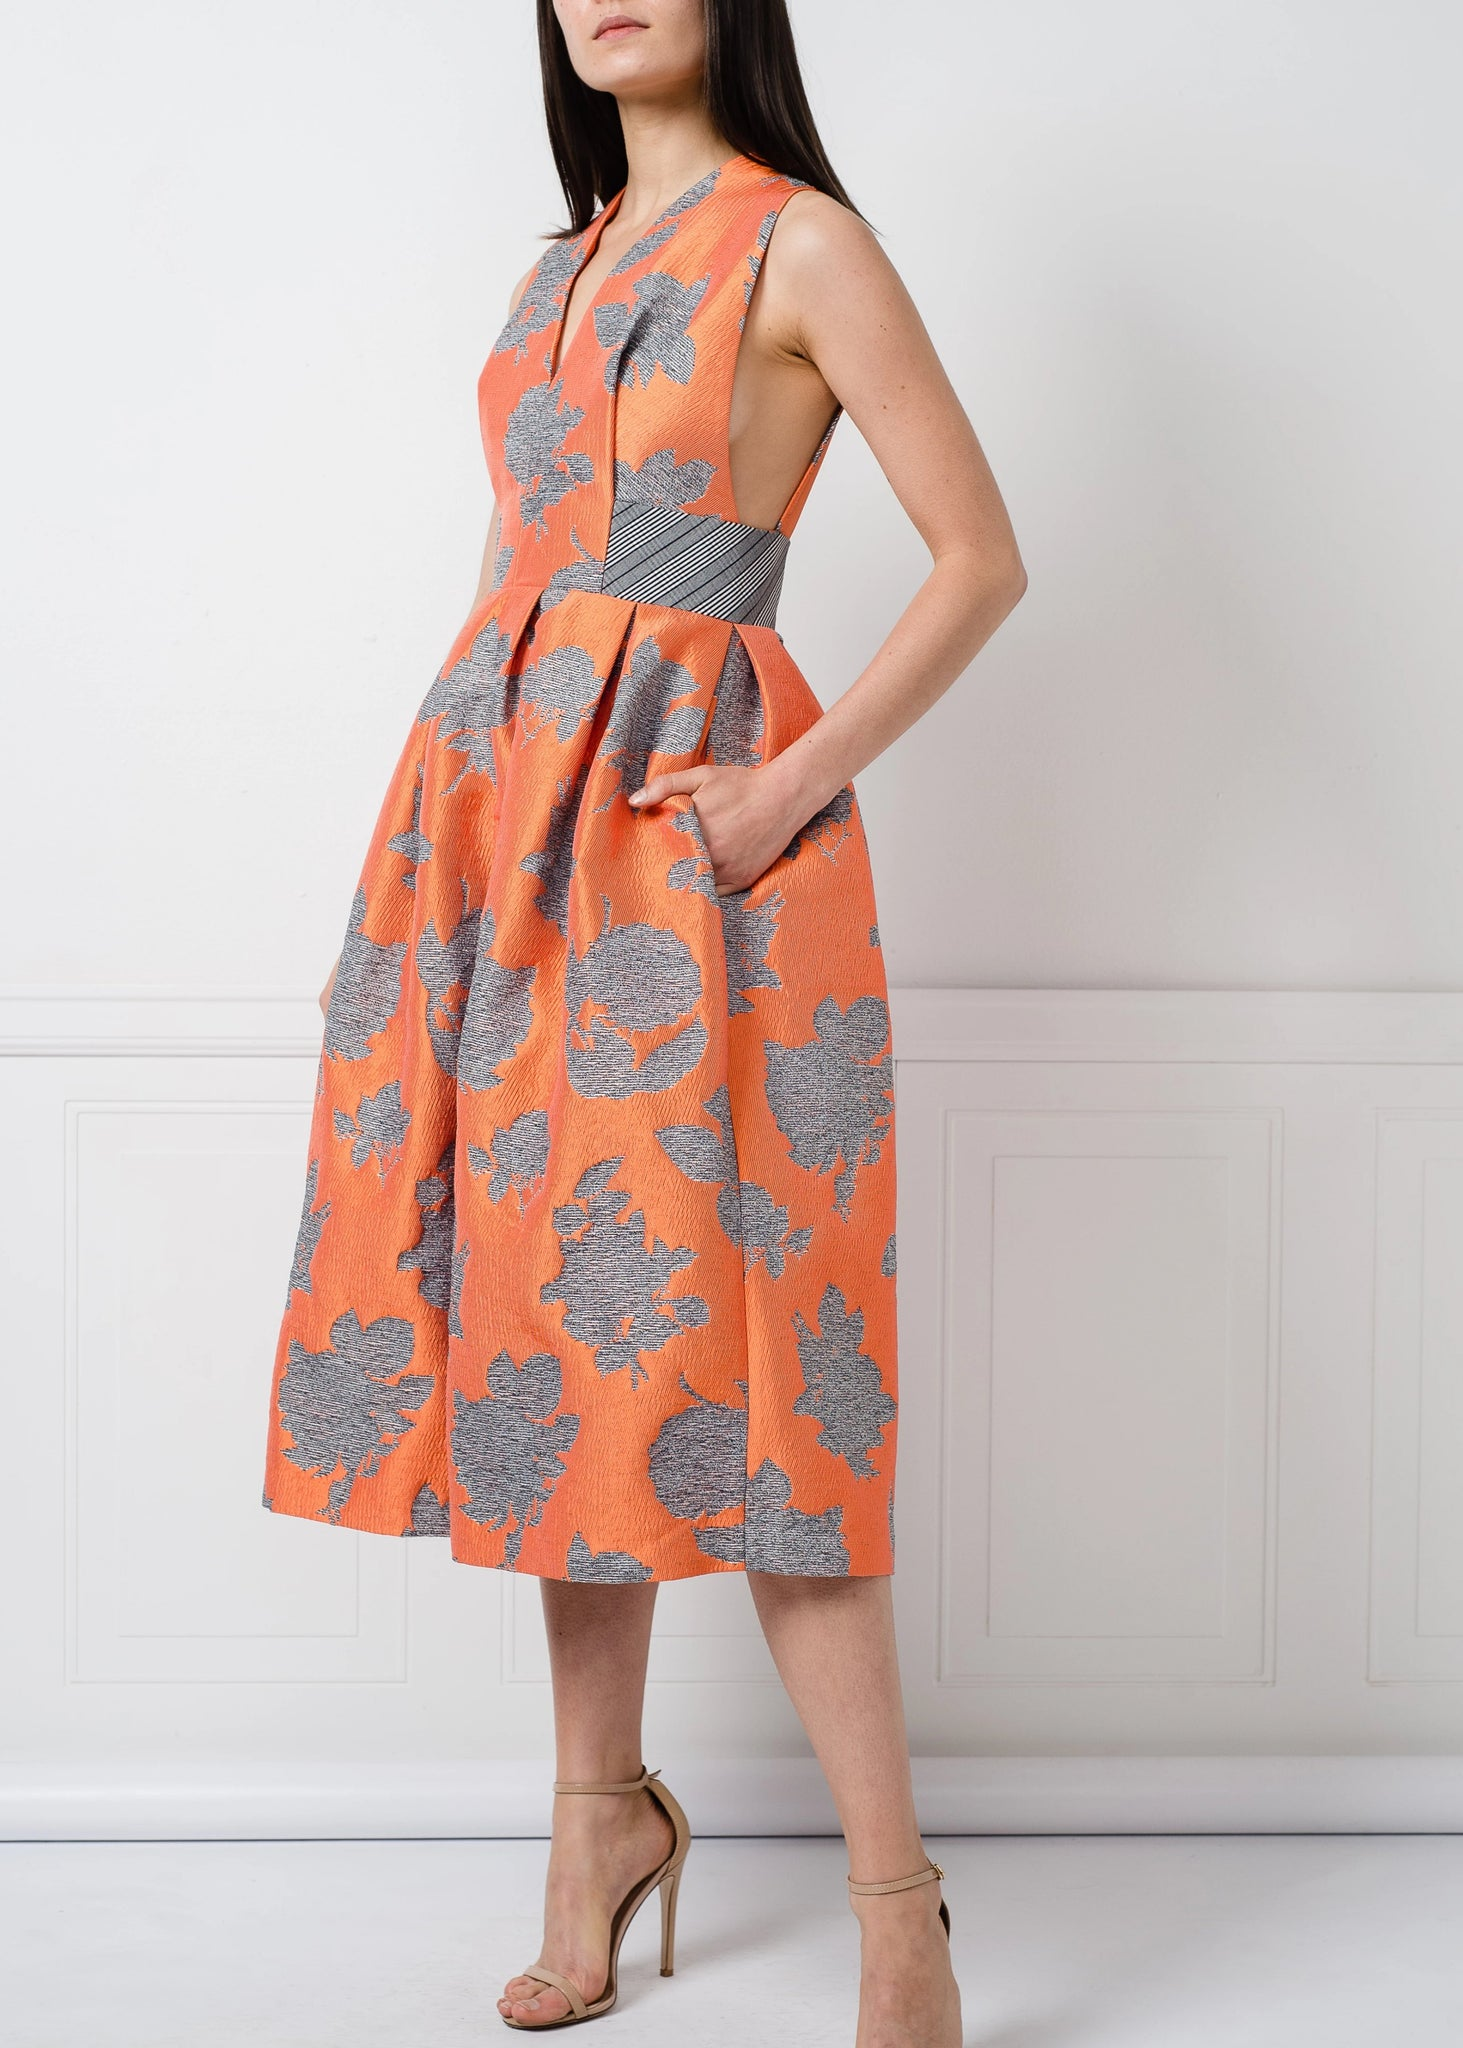 Alkurdi Dress in Orange Floral